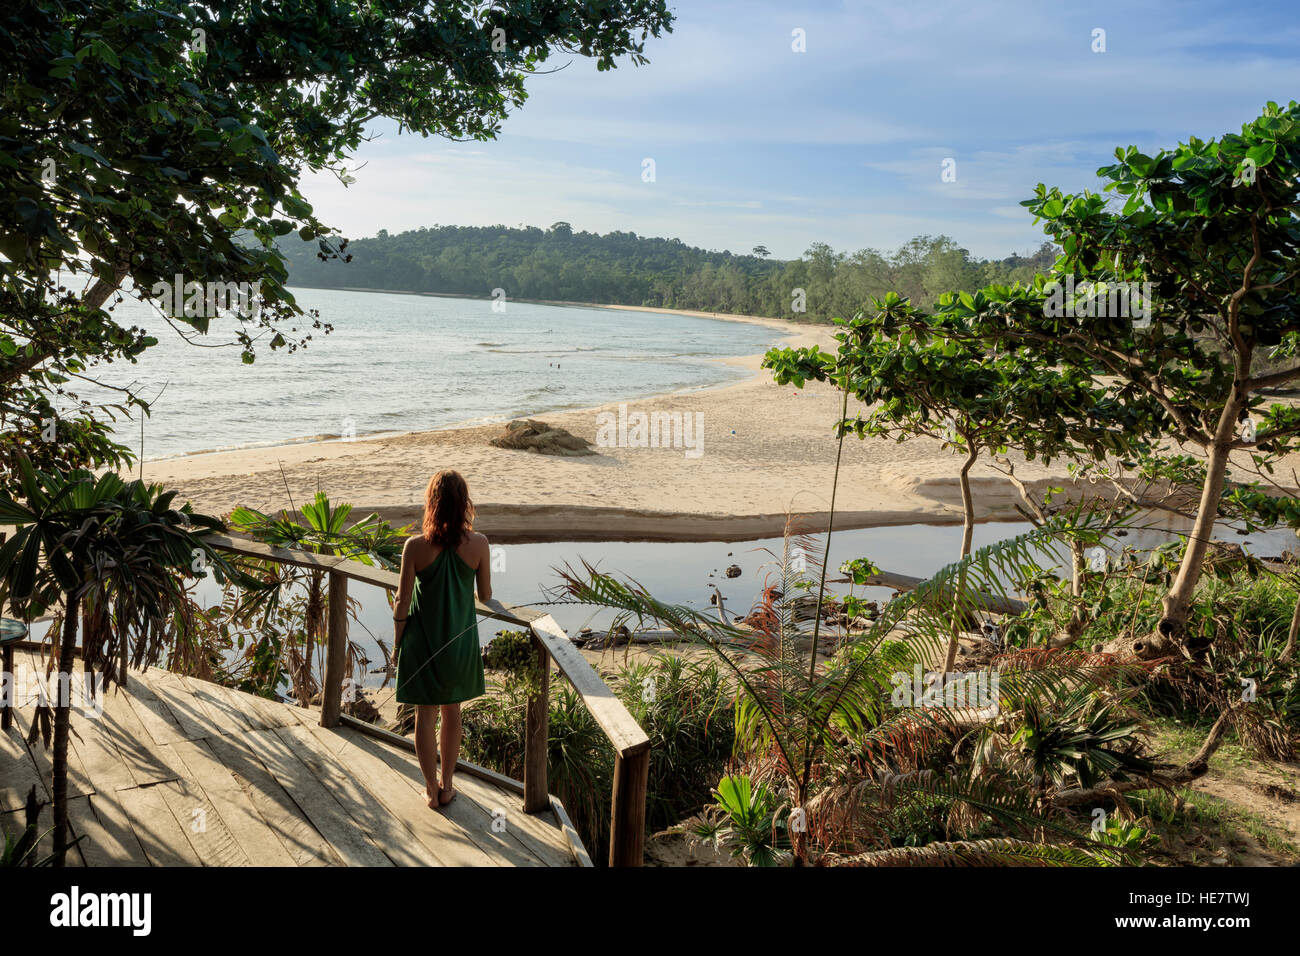 A young woman looks out over a deserted beach, Kaktus resort, Koh Ta Kiev, Sihanoukville, Cambodia - Stock Image